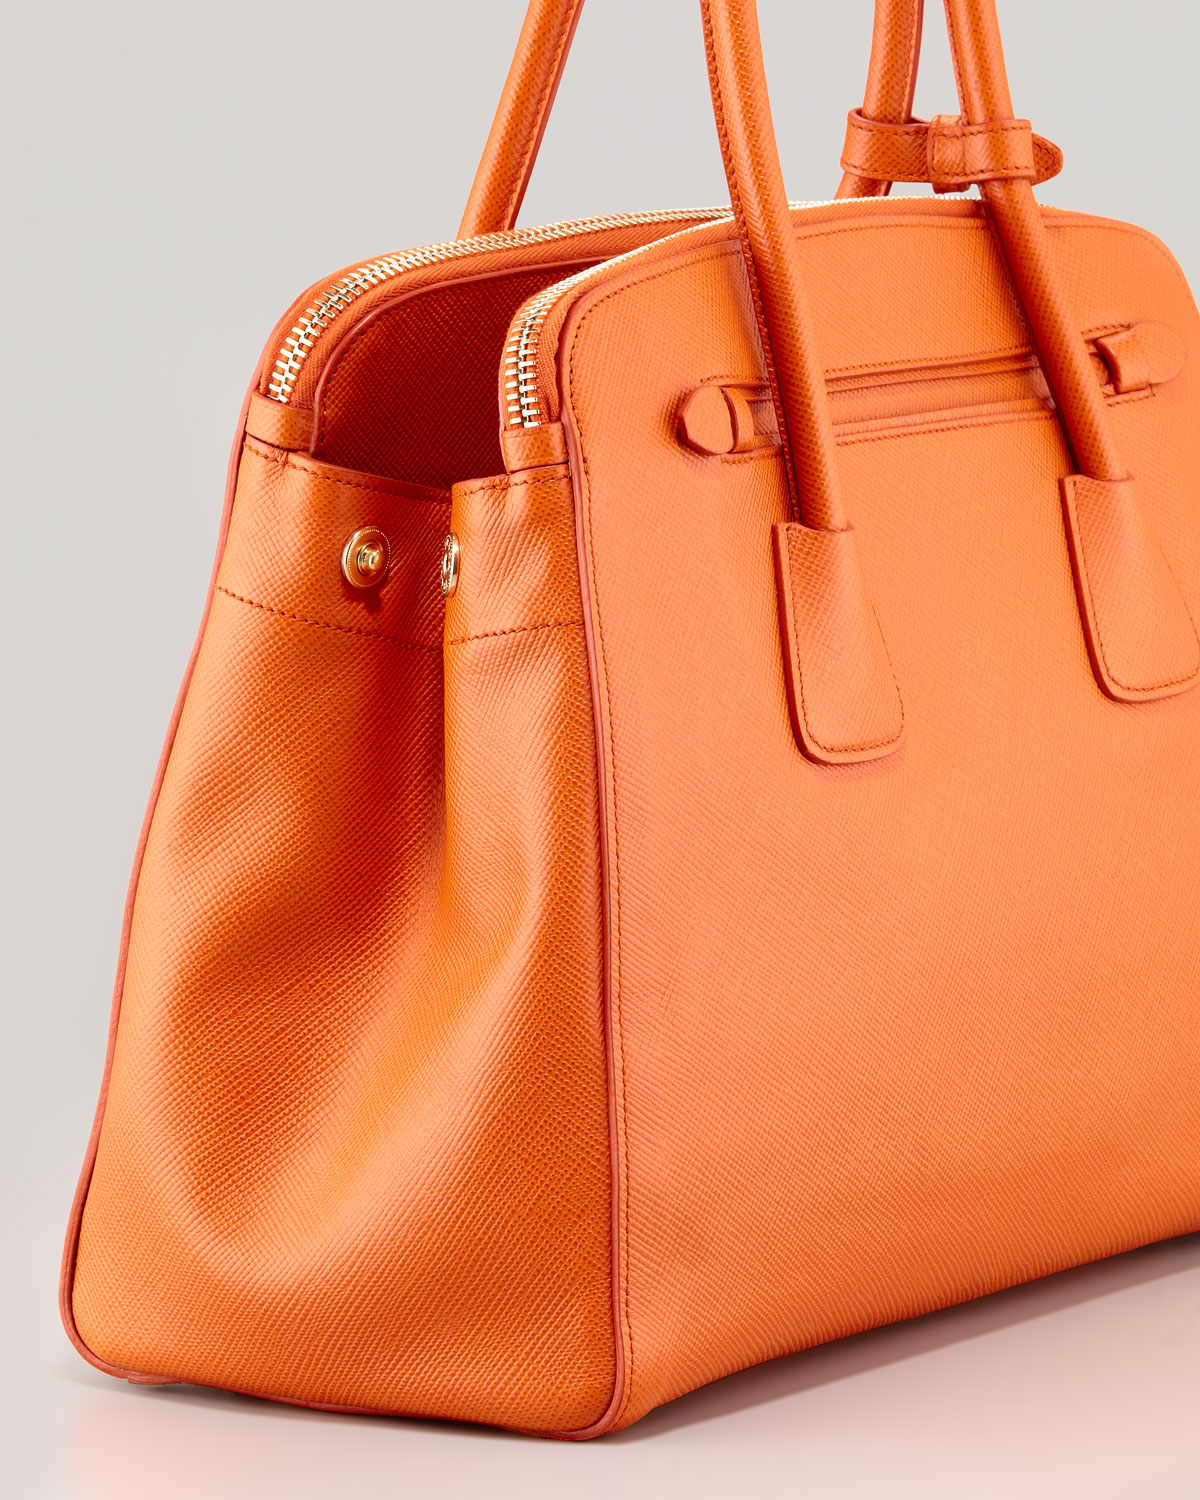 Prada Saffiano Cuir Large Double Zip Tote Bag in Orange | Lyst